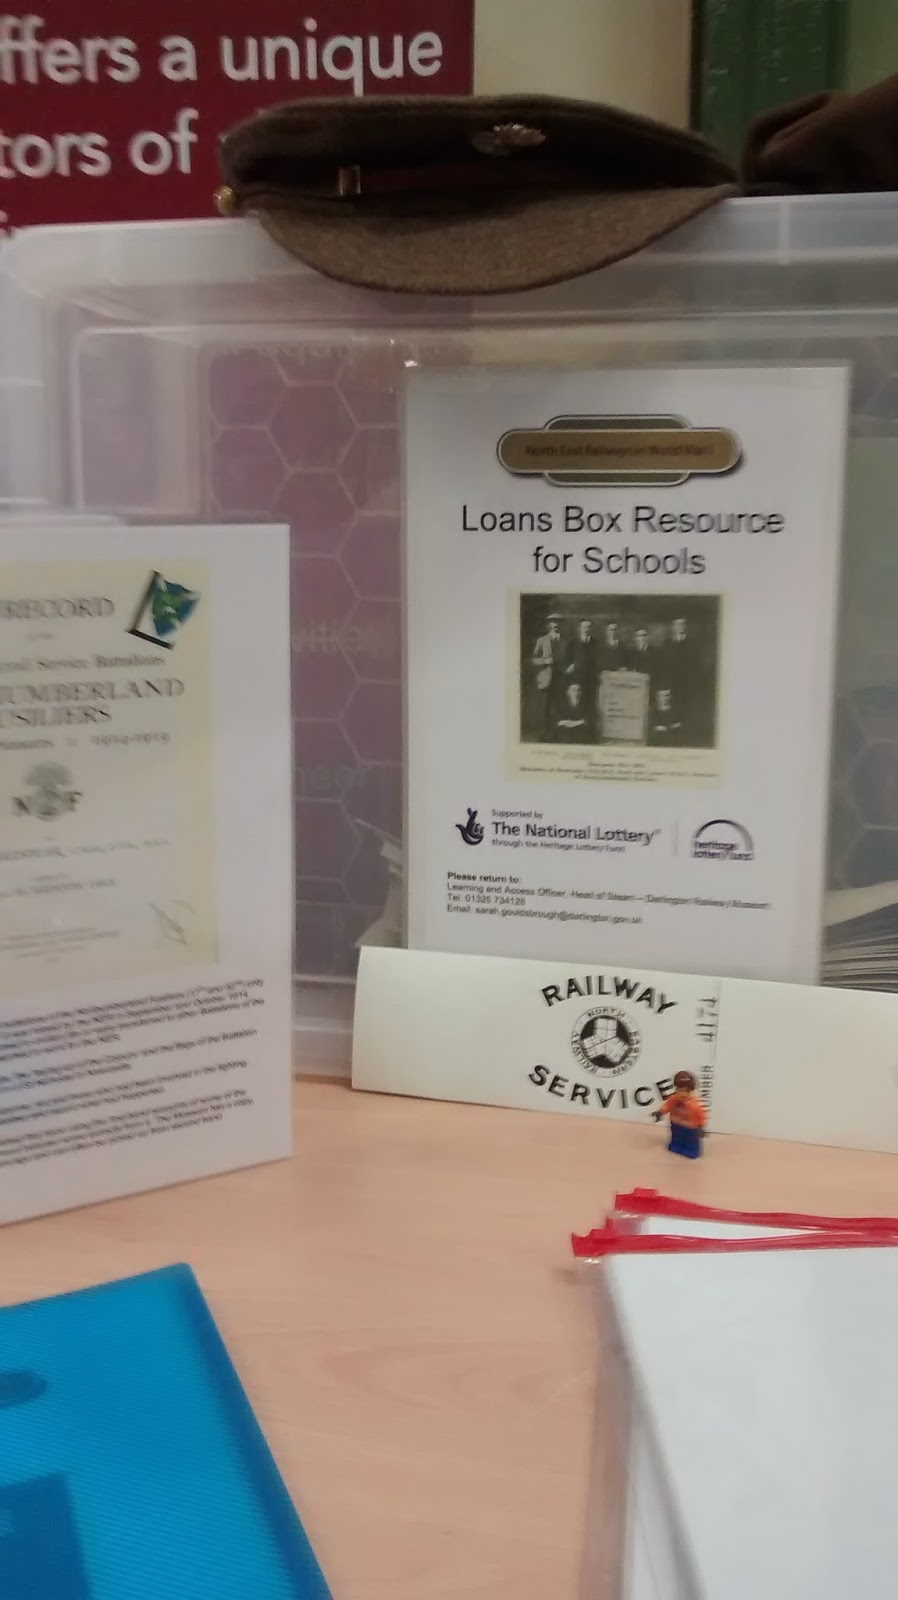 image of Loans Box